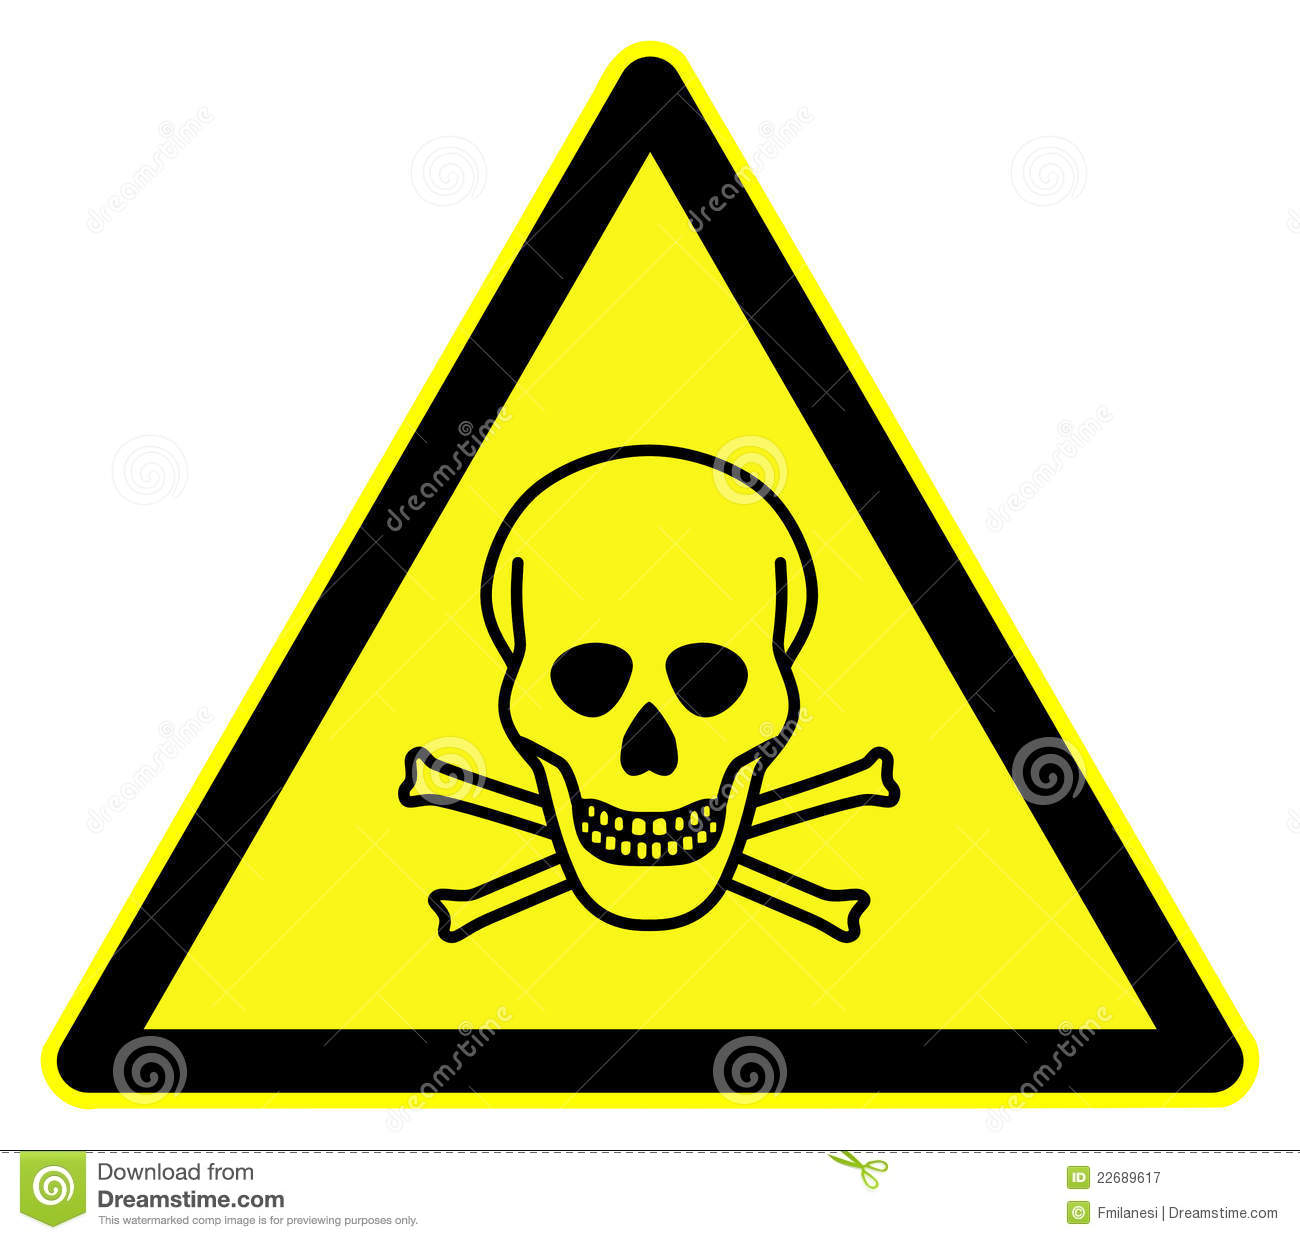 Toxic symbol stock illustration illustration of dead 22689617 toxic symbol biocorpaavc Images